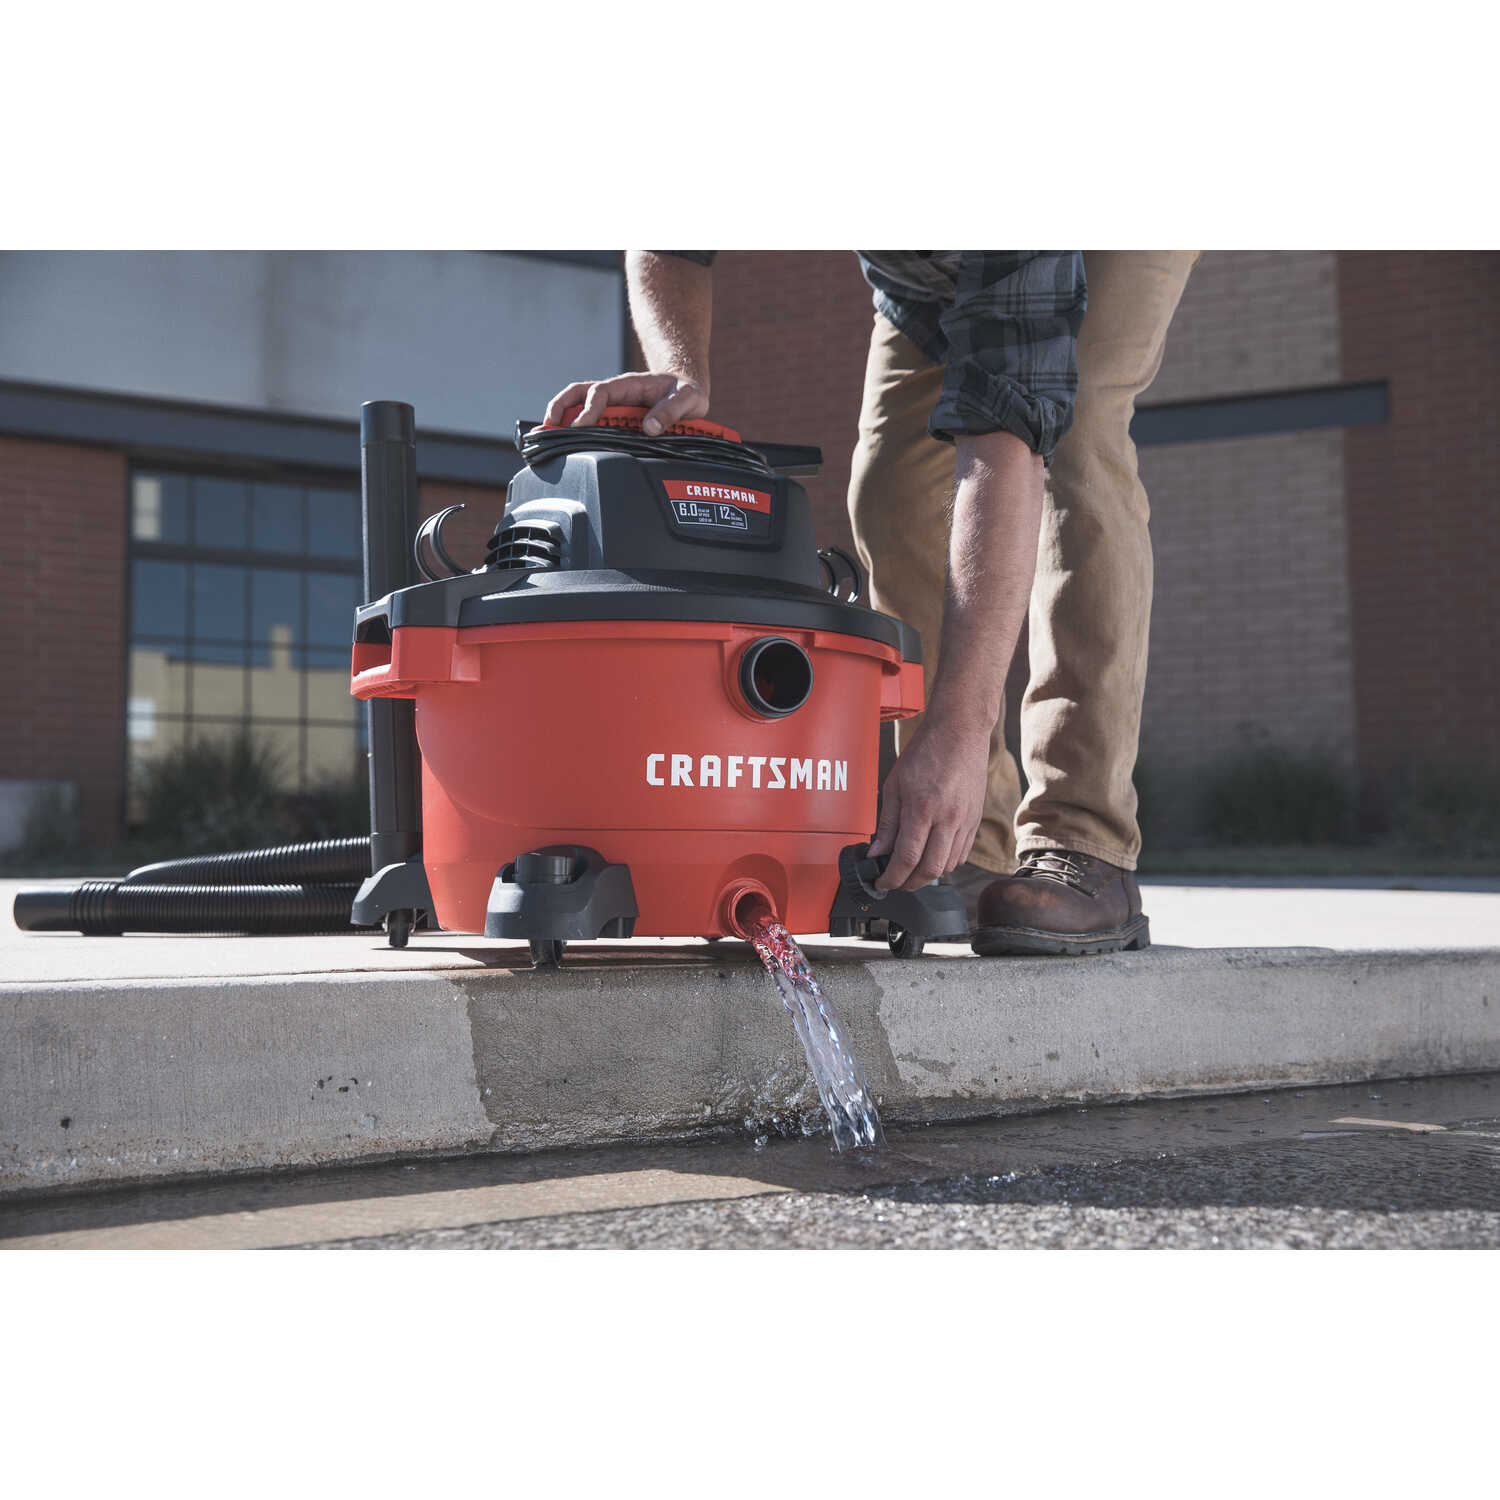 Craftsman  12 gal. Corded  Wet/Dry Vacuum  10.5 amps 120 volt 6 hp Red  26 lb.